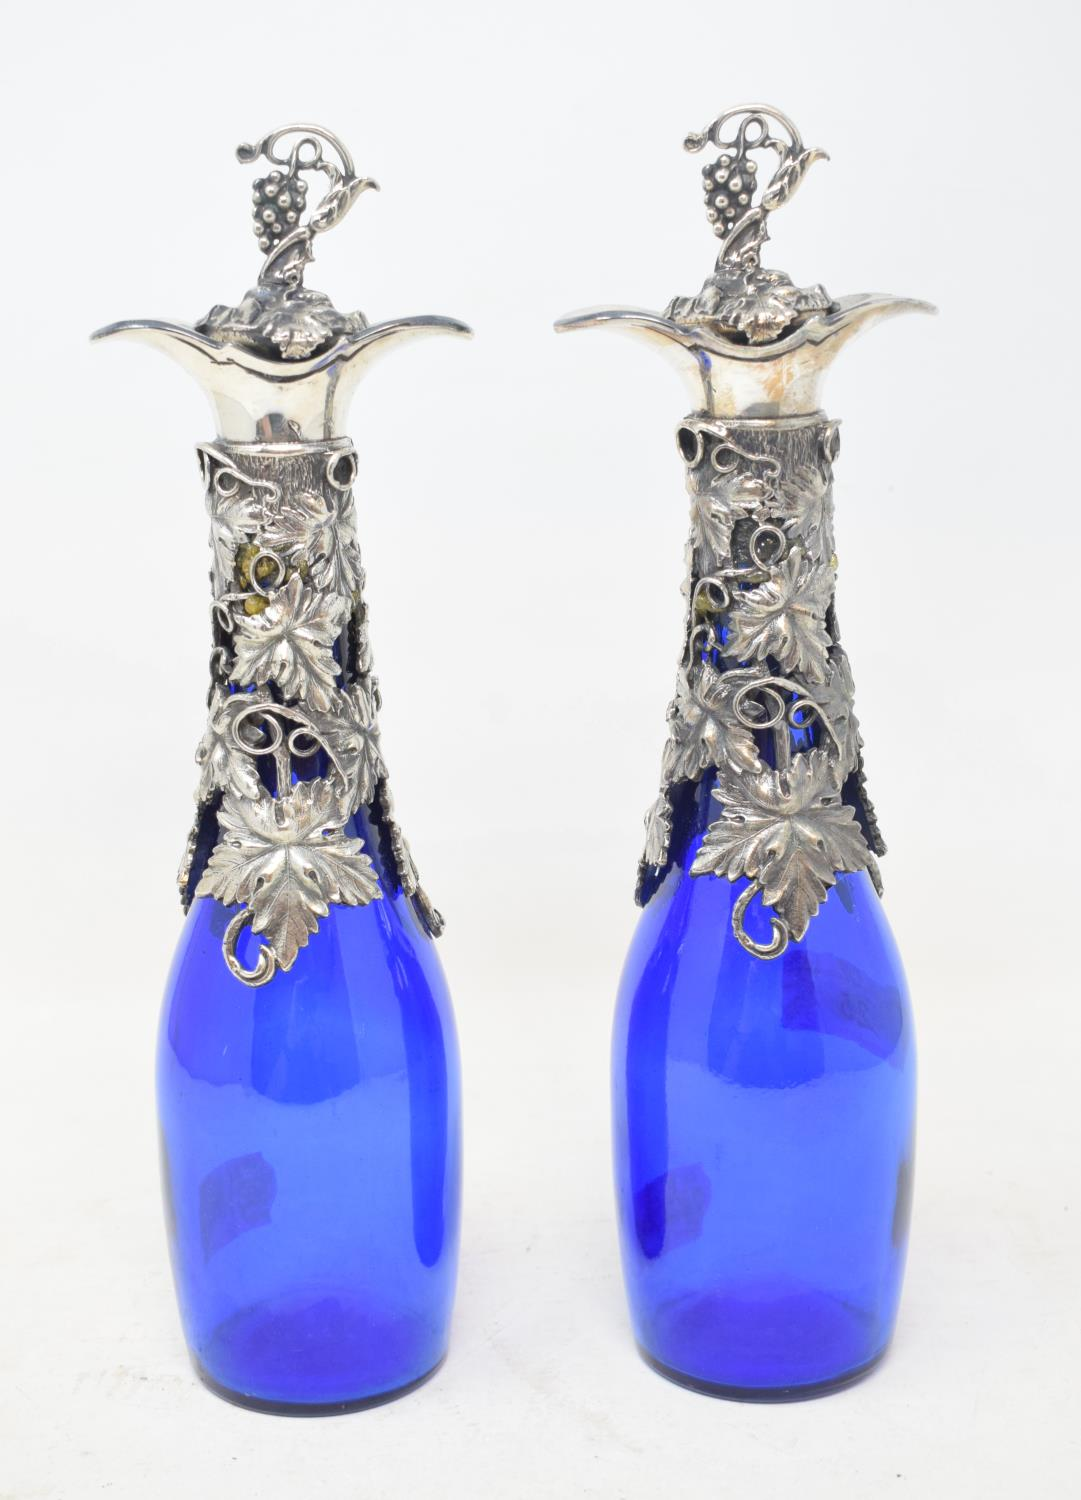 A pair of blue glass decanters, with plated mounts, 16.5 cm high (2) Modern